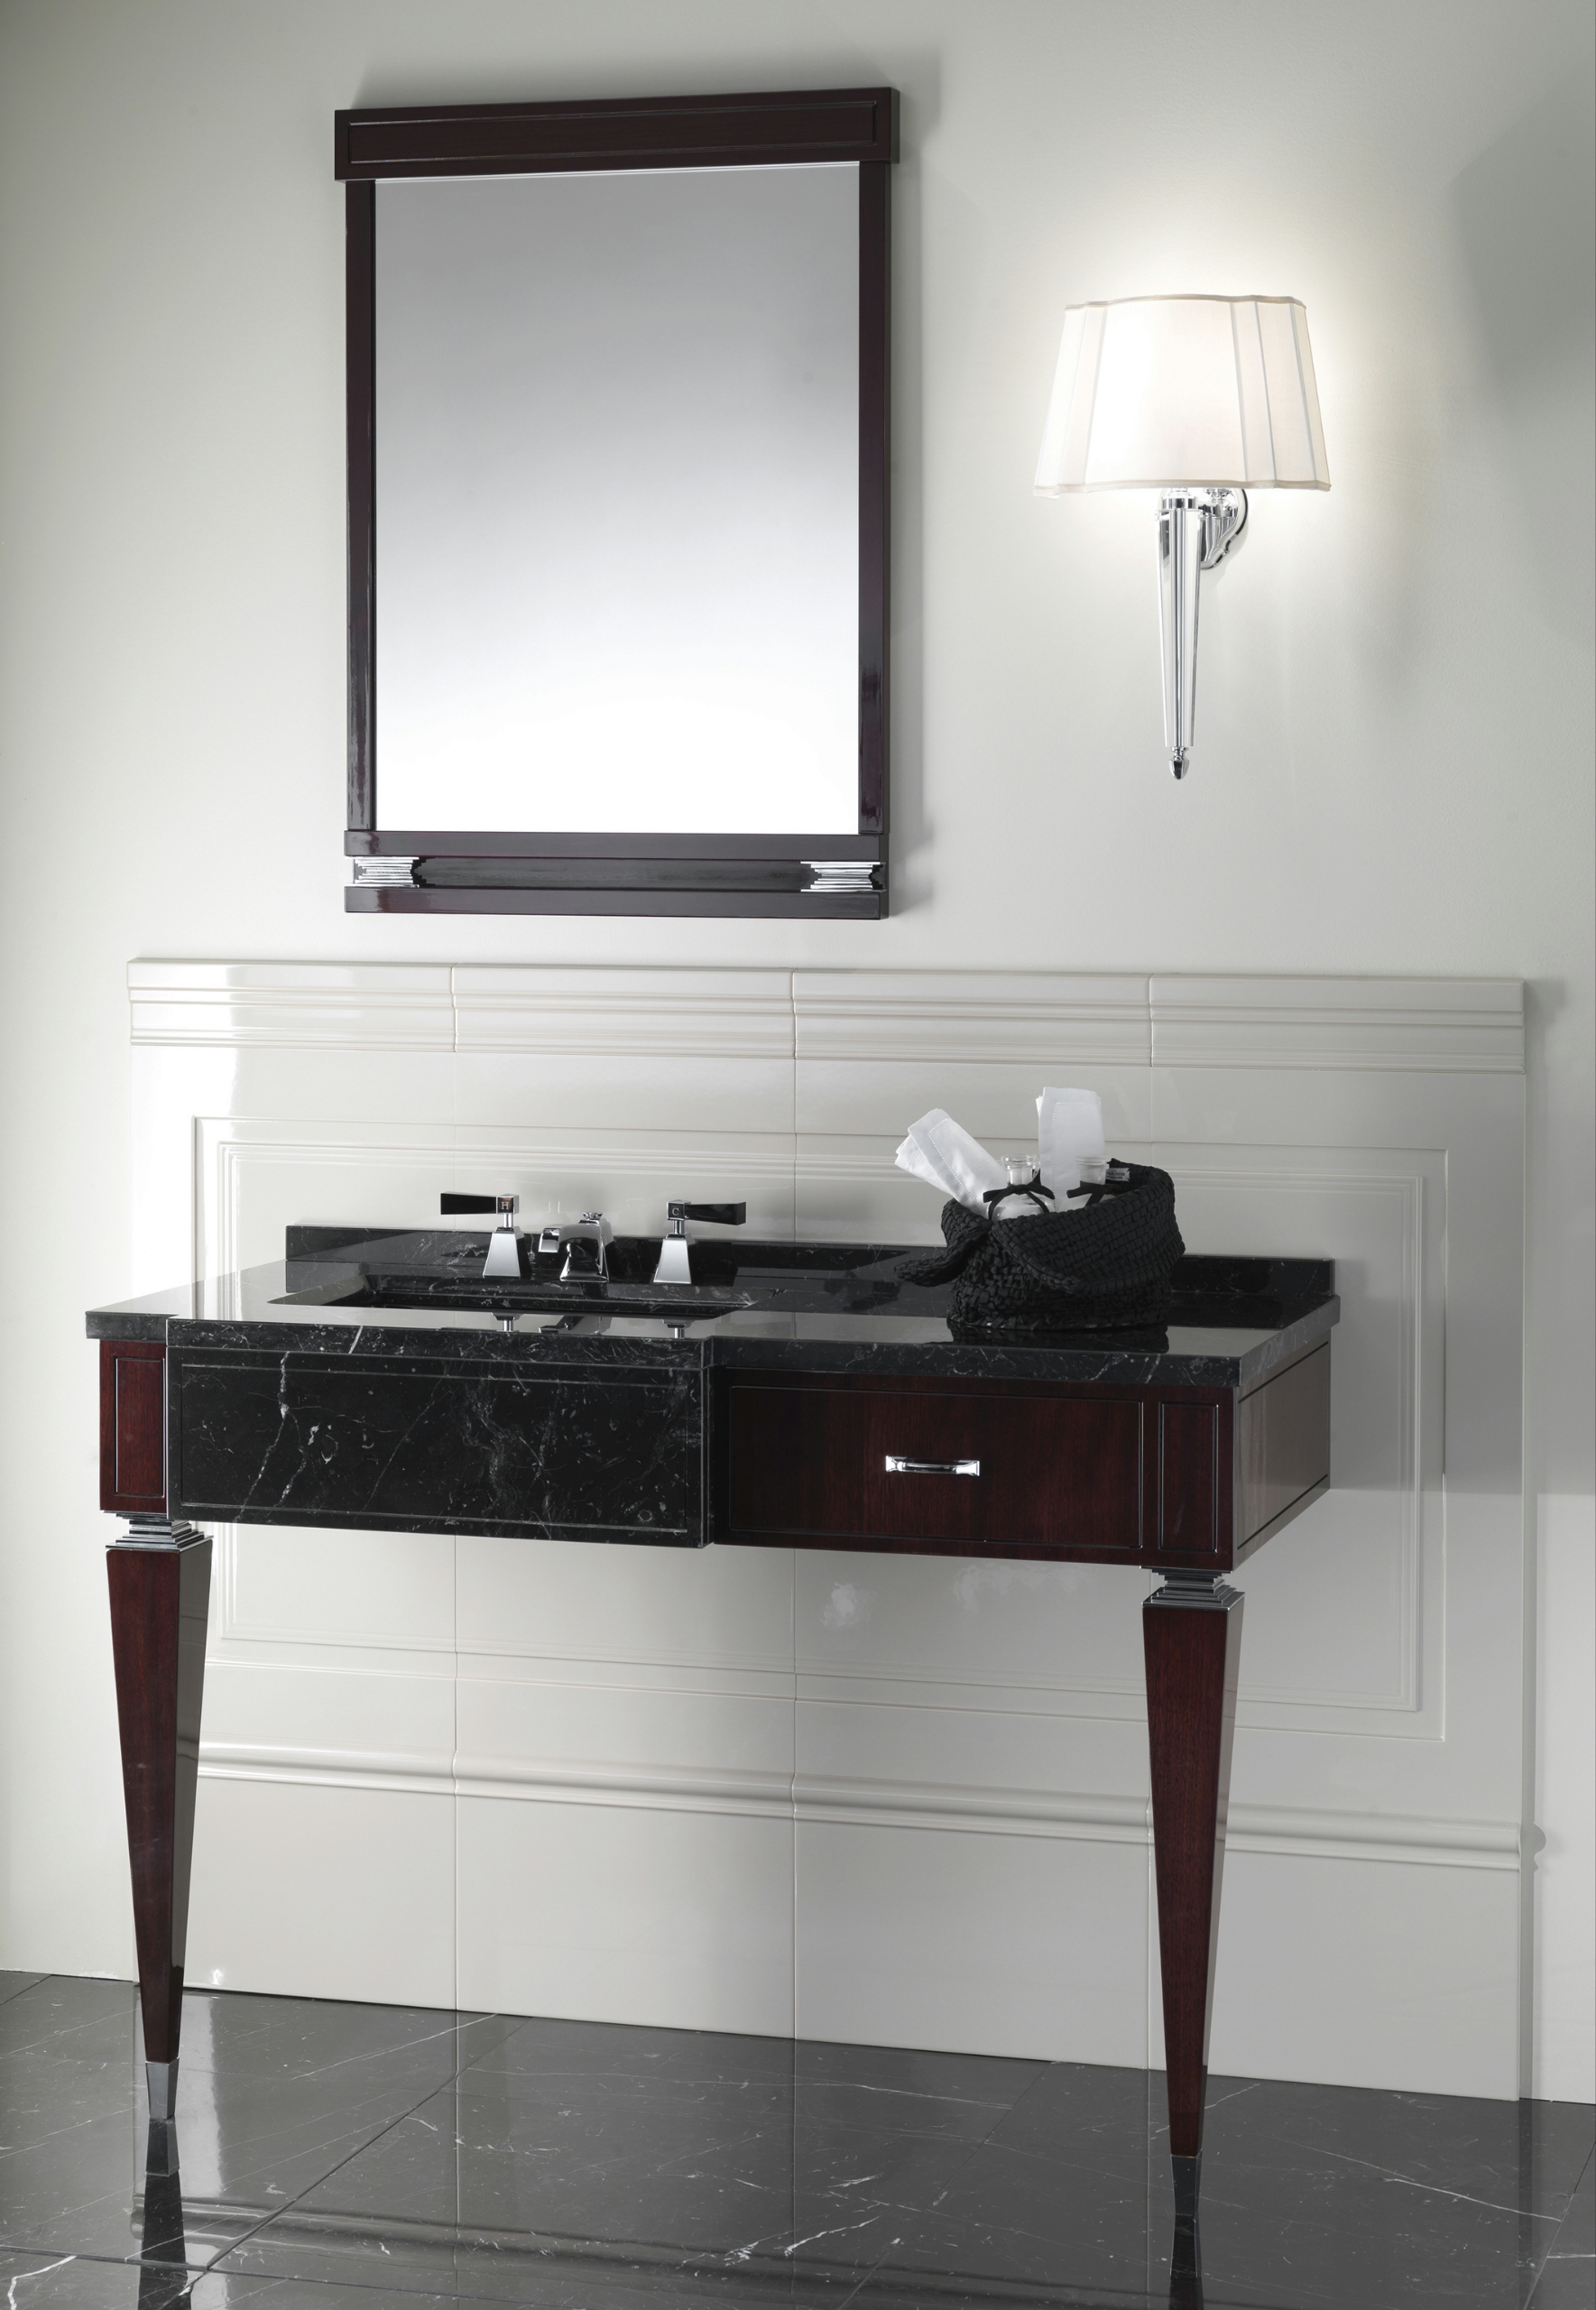 bentley specchio bagno by devon devon. Black Bedroom Furniture Sets. Home Design Ideas